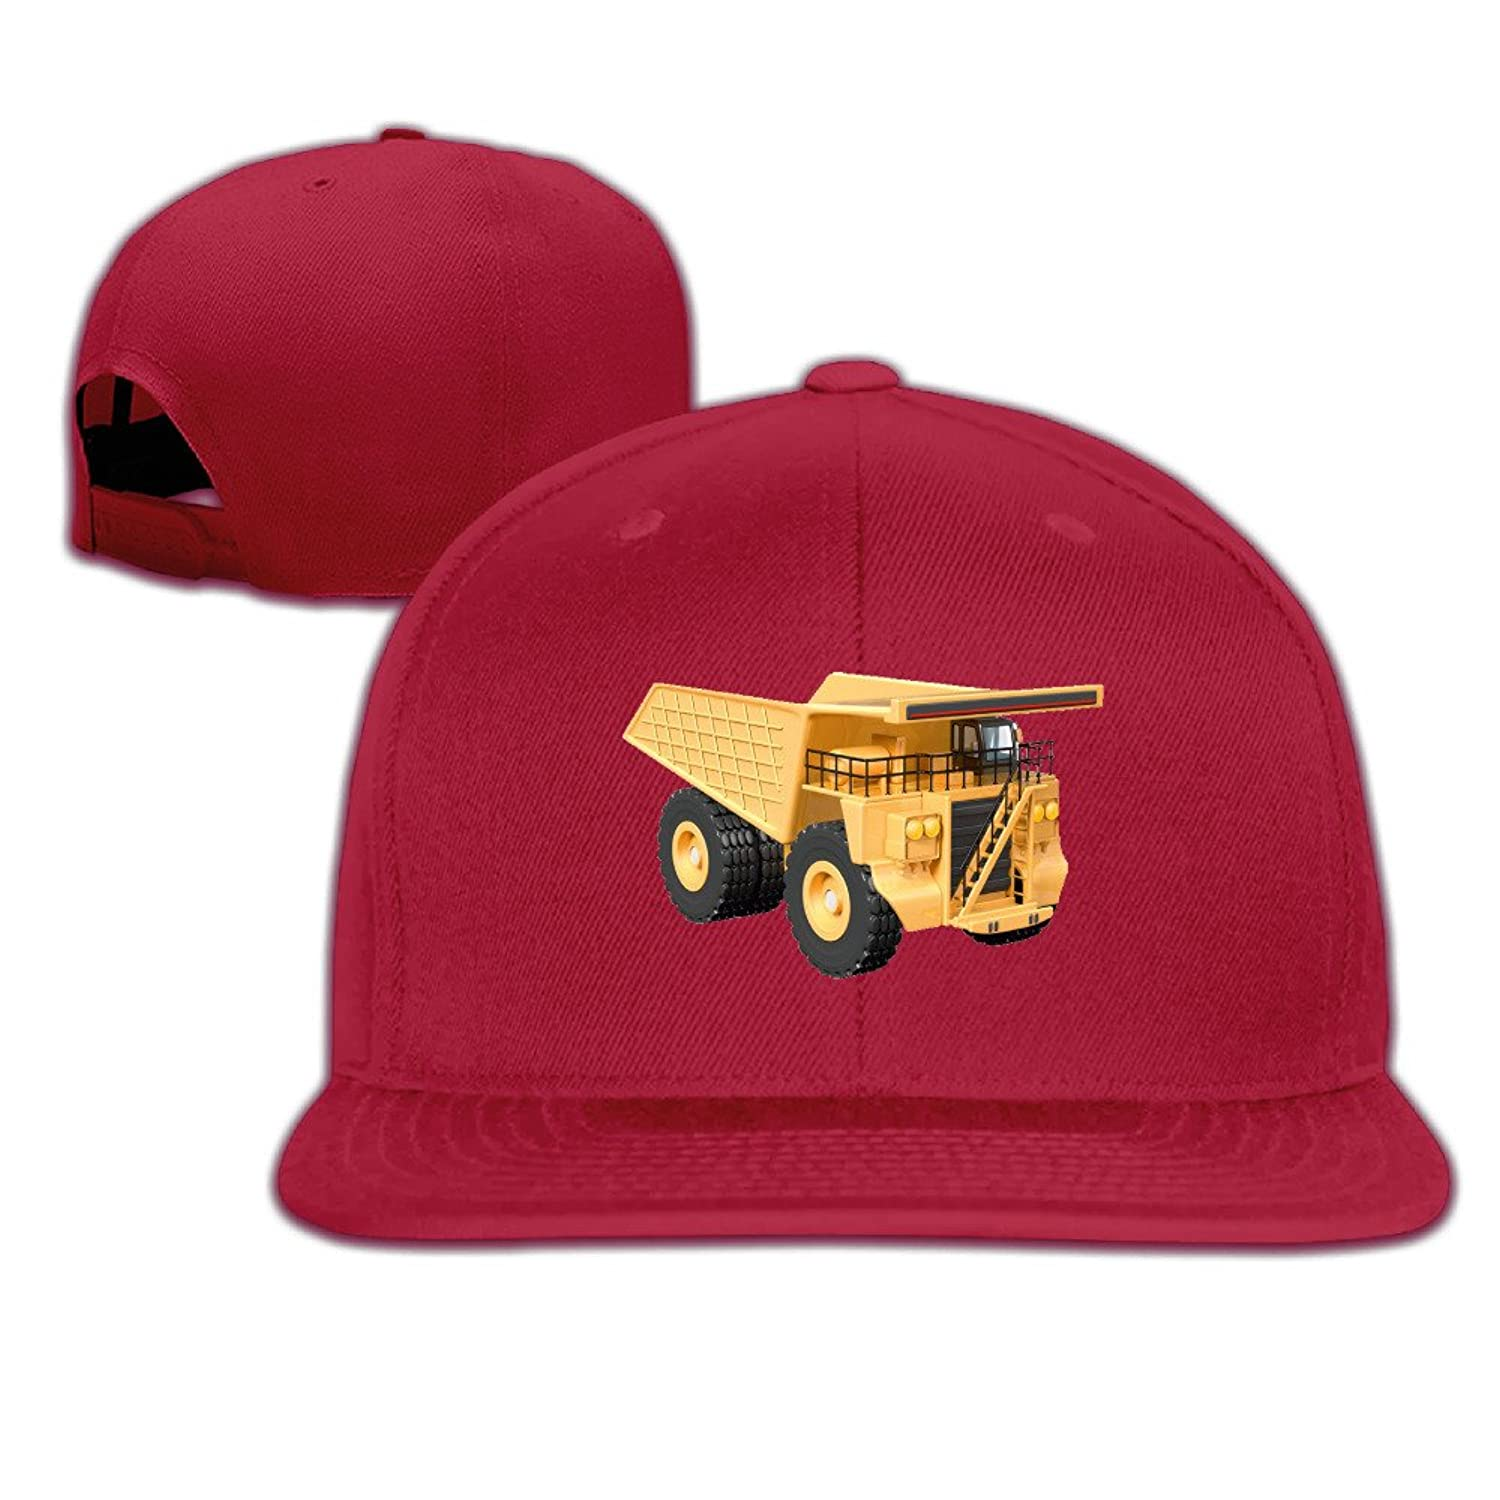 Tipper Casual Sports Caps Unisex Style Hat